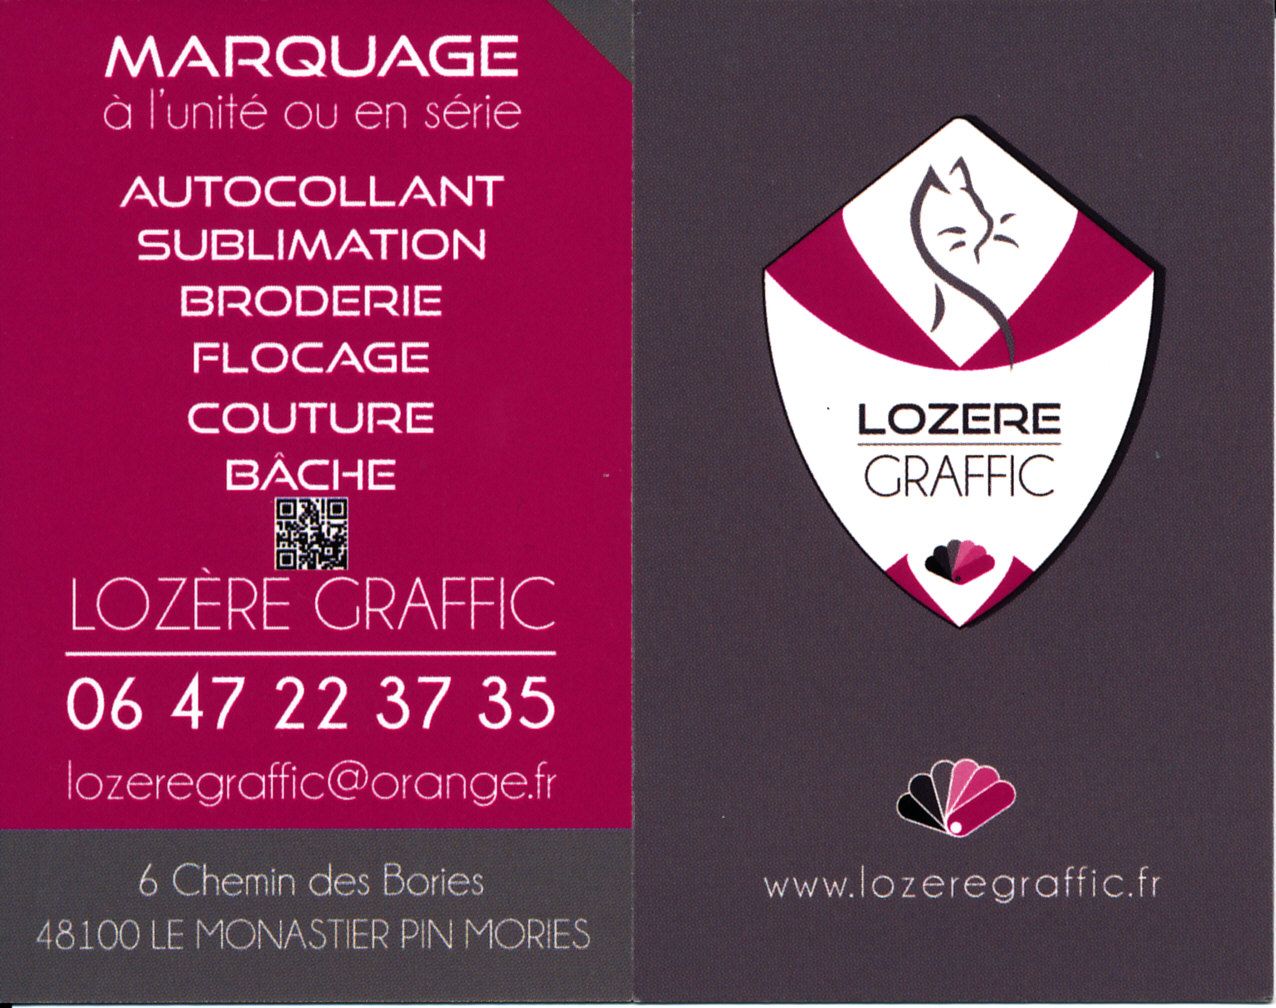 Lozere Graffic 2